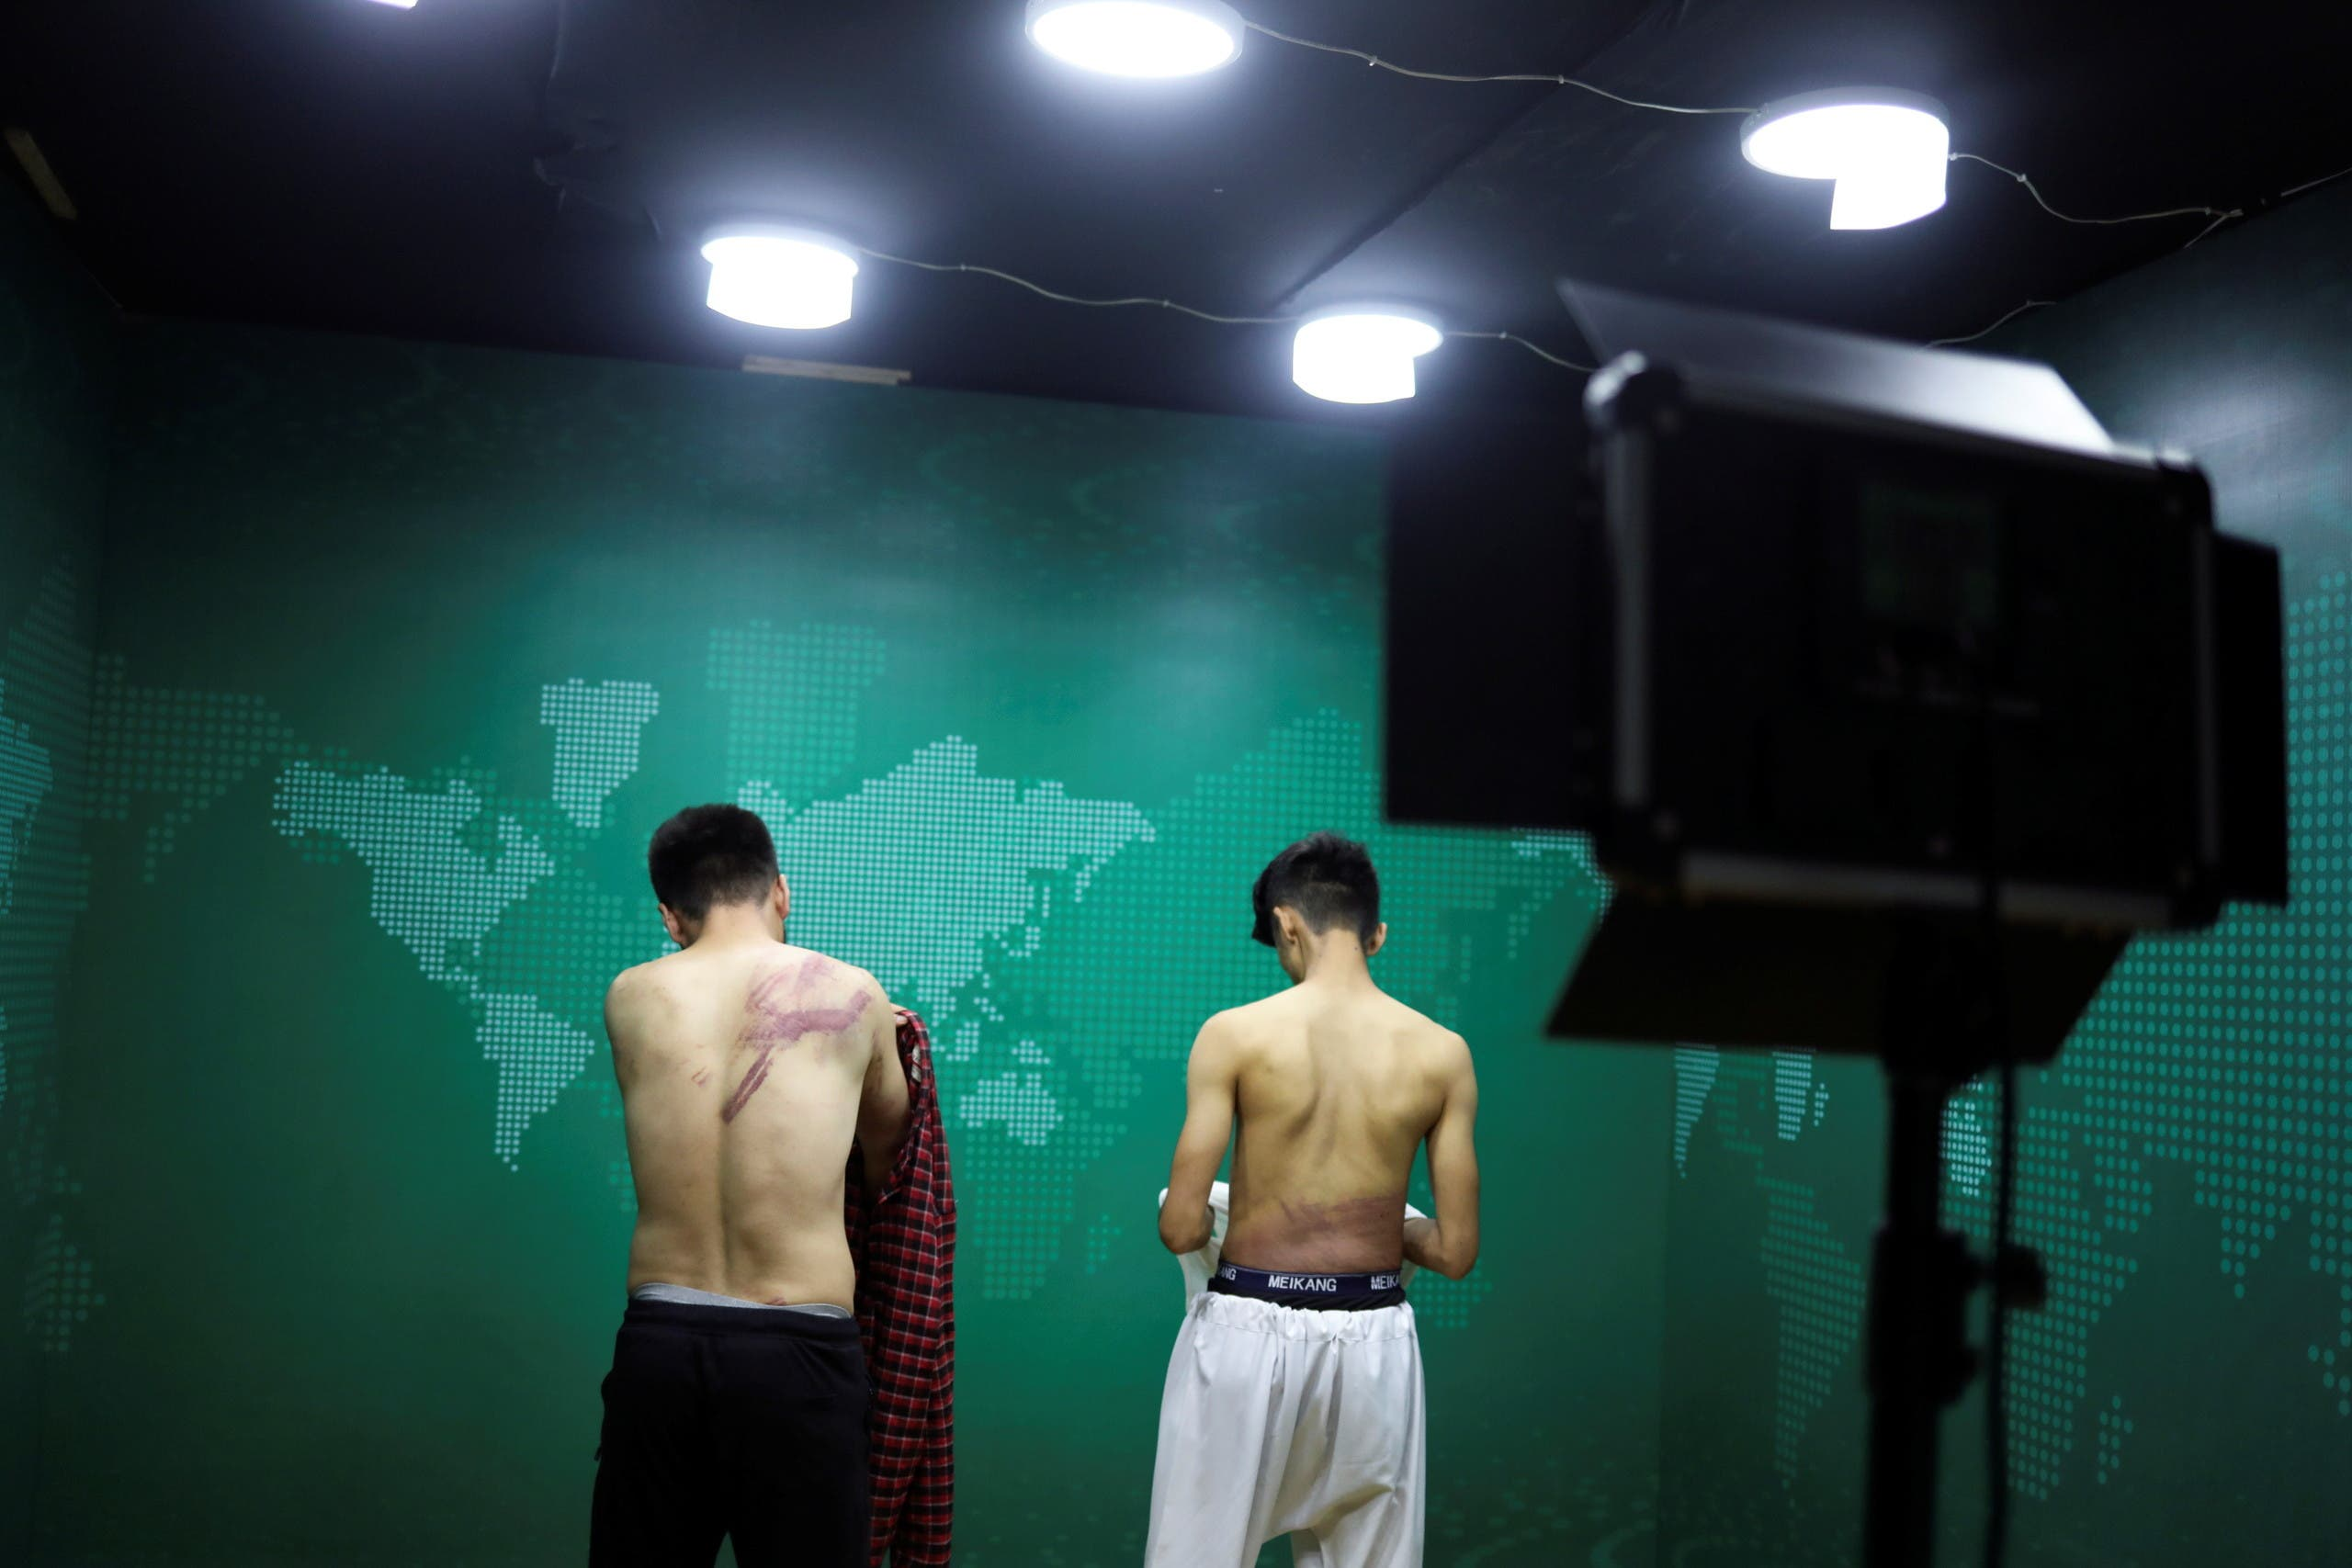 Journalists show their injuries after being beaten by the Taliban in Kabul, Afghanistan September 8, 2021 in this picture obtained from social media. Picture taken September 8, 2021. (Reuters)